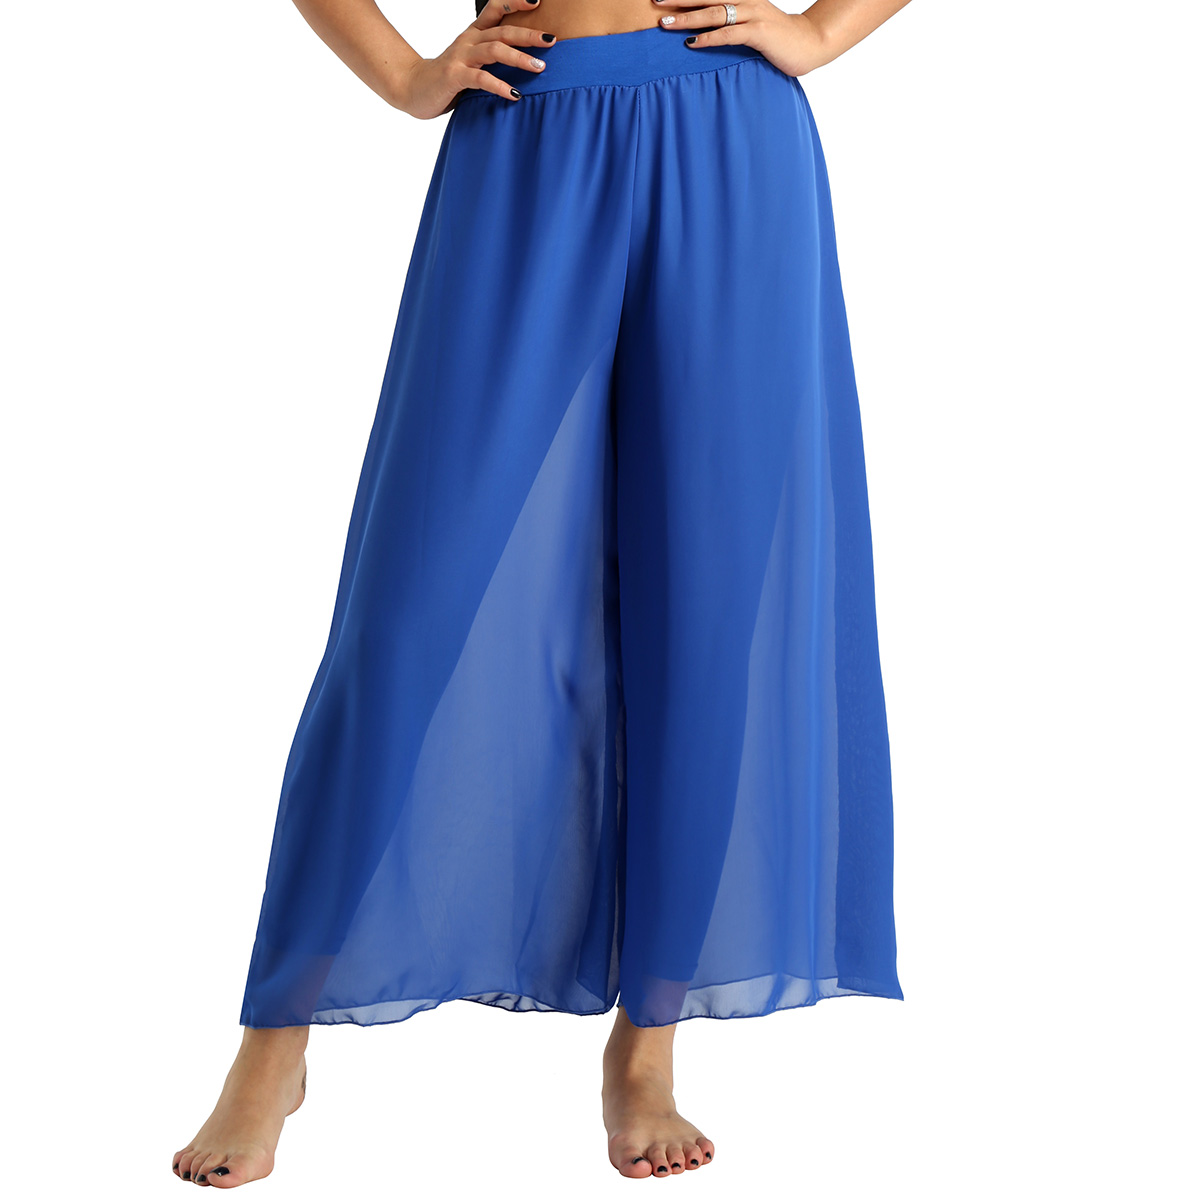 MSemis Womens Belly Dance Pants Flowy Chiffon High-waisted Loose Wide-leg Pants for Girls Performance Costume Ballet Dance Pants